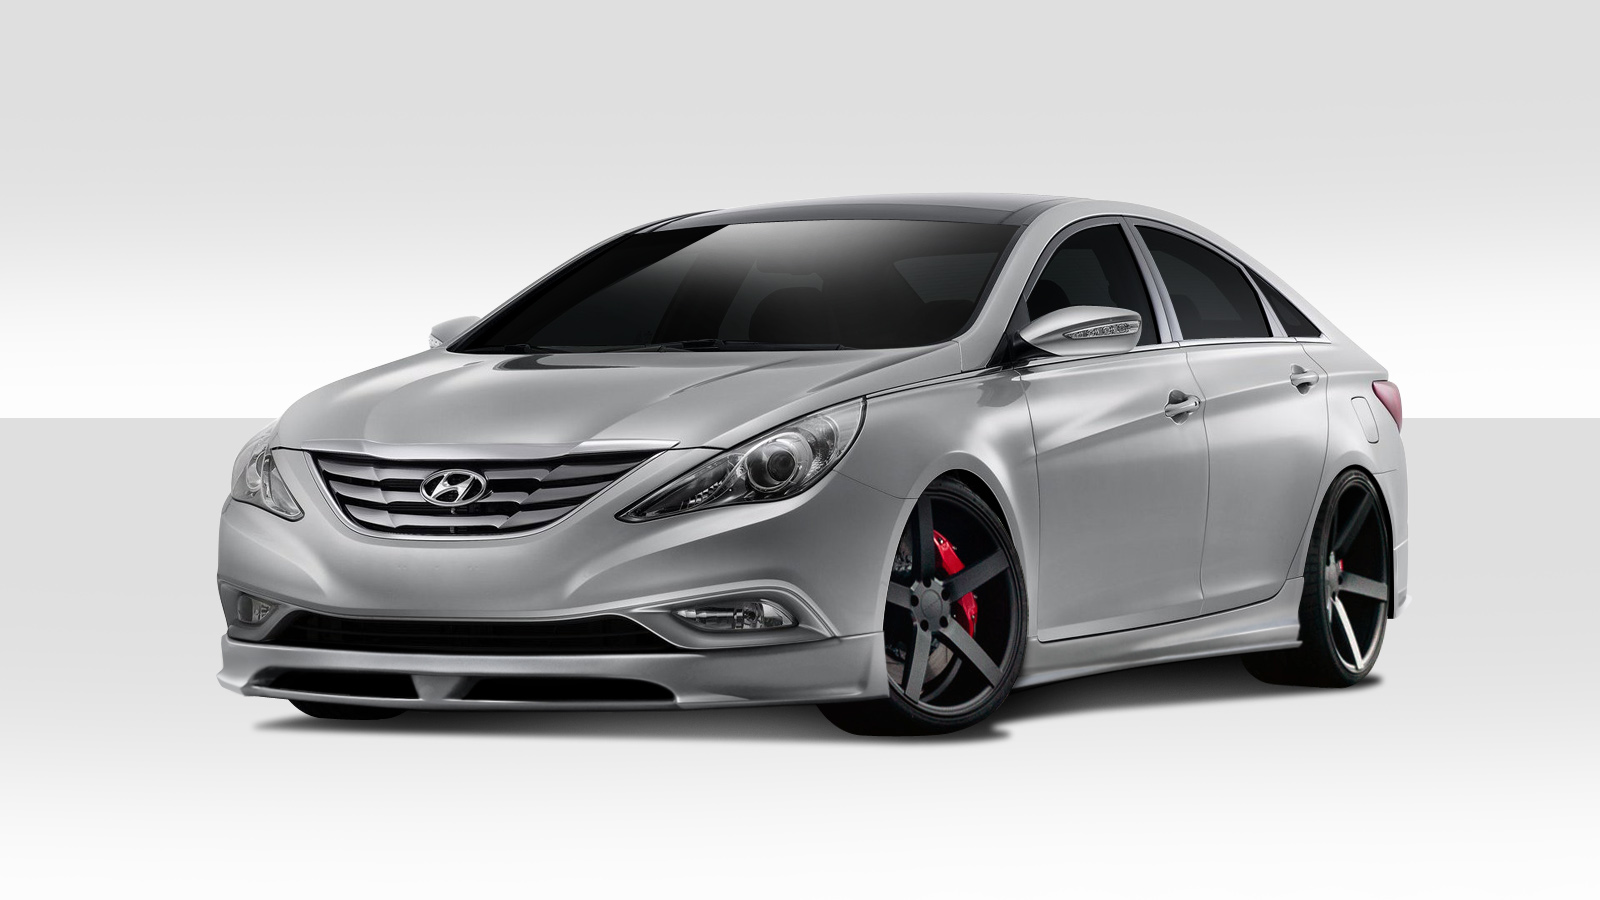 Image Is Loading 11 13 Fits Hyundai Sonata Racer Duraflex Full